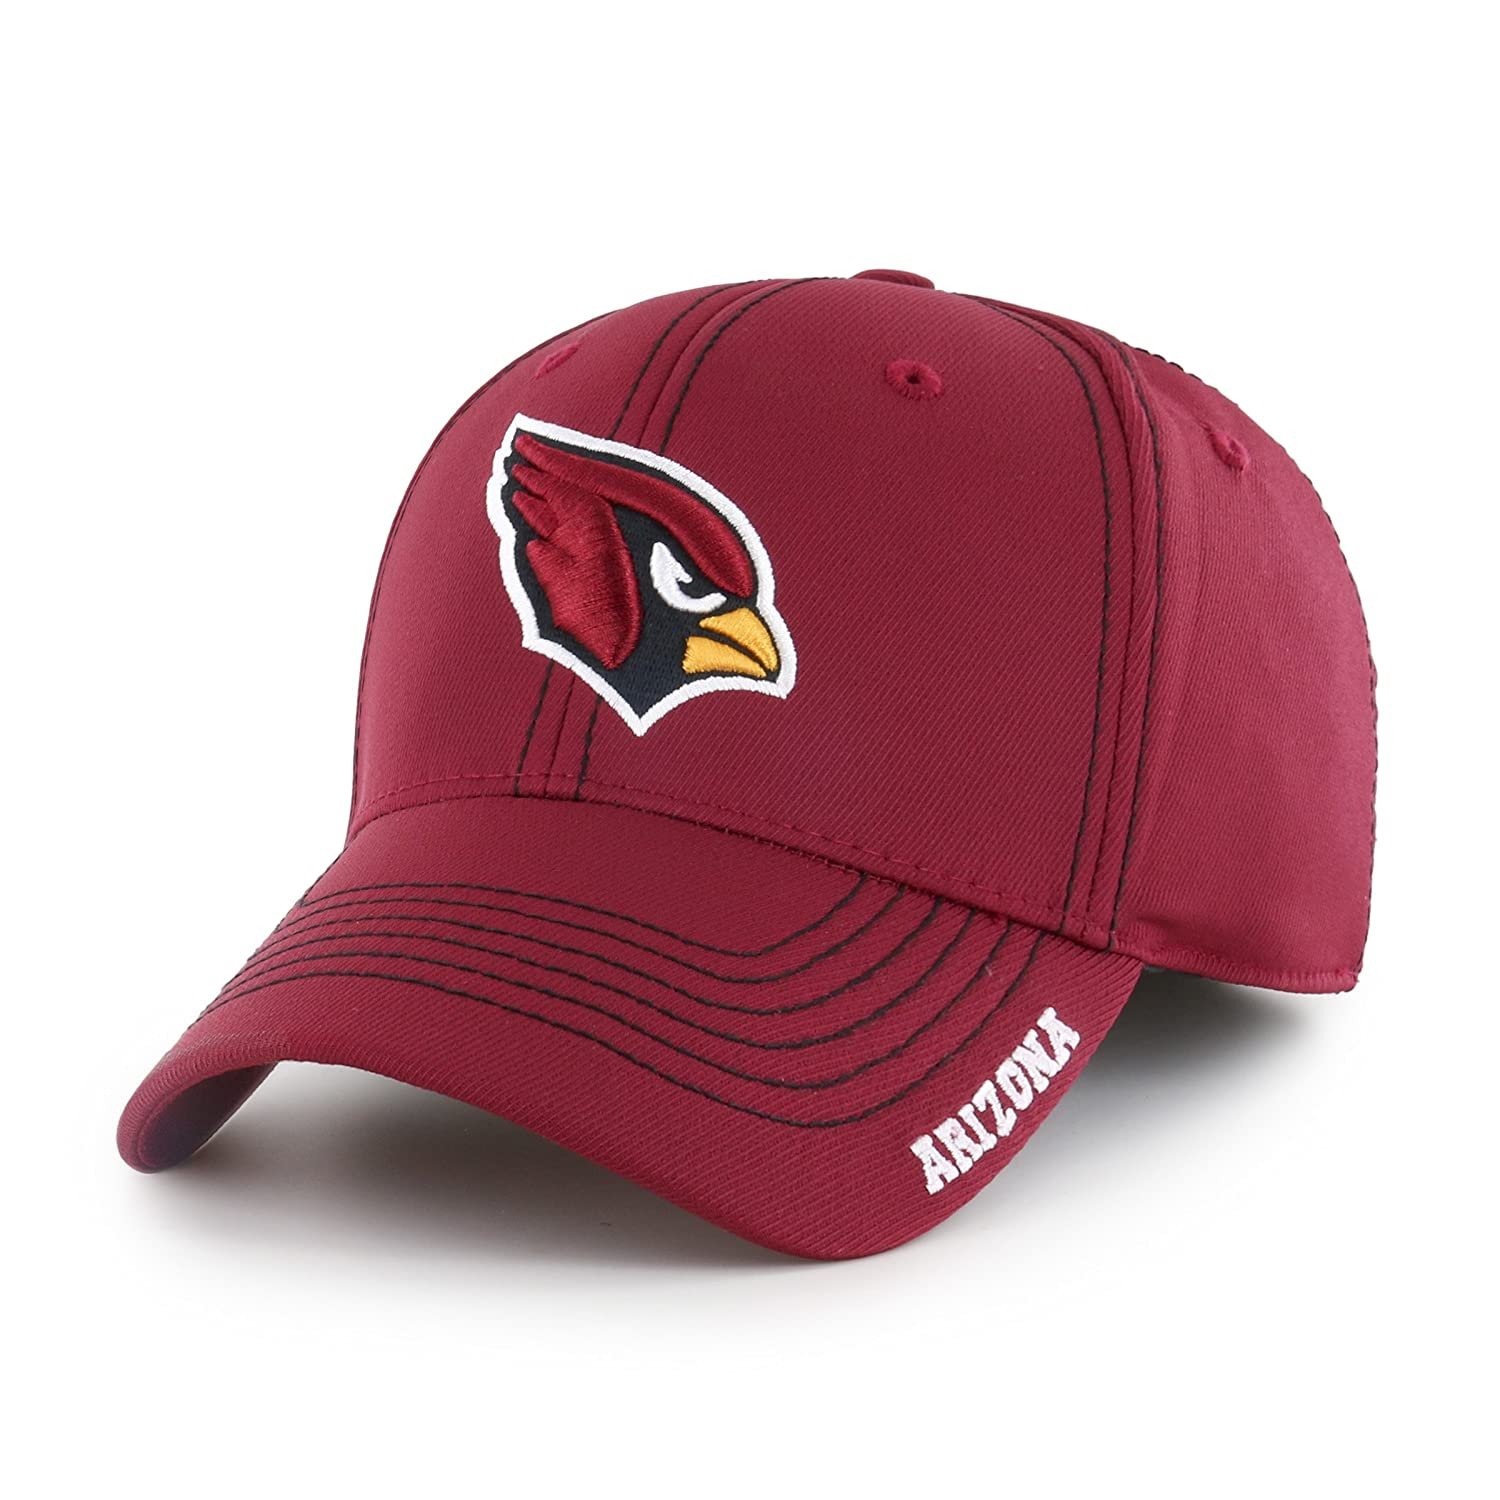 7e4a1c50dff9d Amazon.com   OTS NFL Adult Men s NFL Start Line Center Stretch Fit Hat    Sports   Outdoors